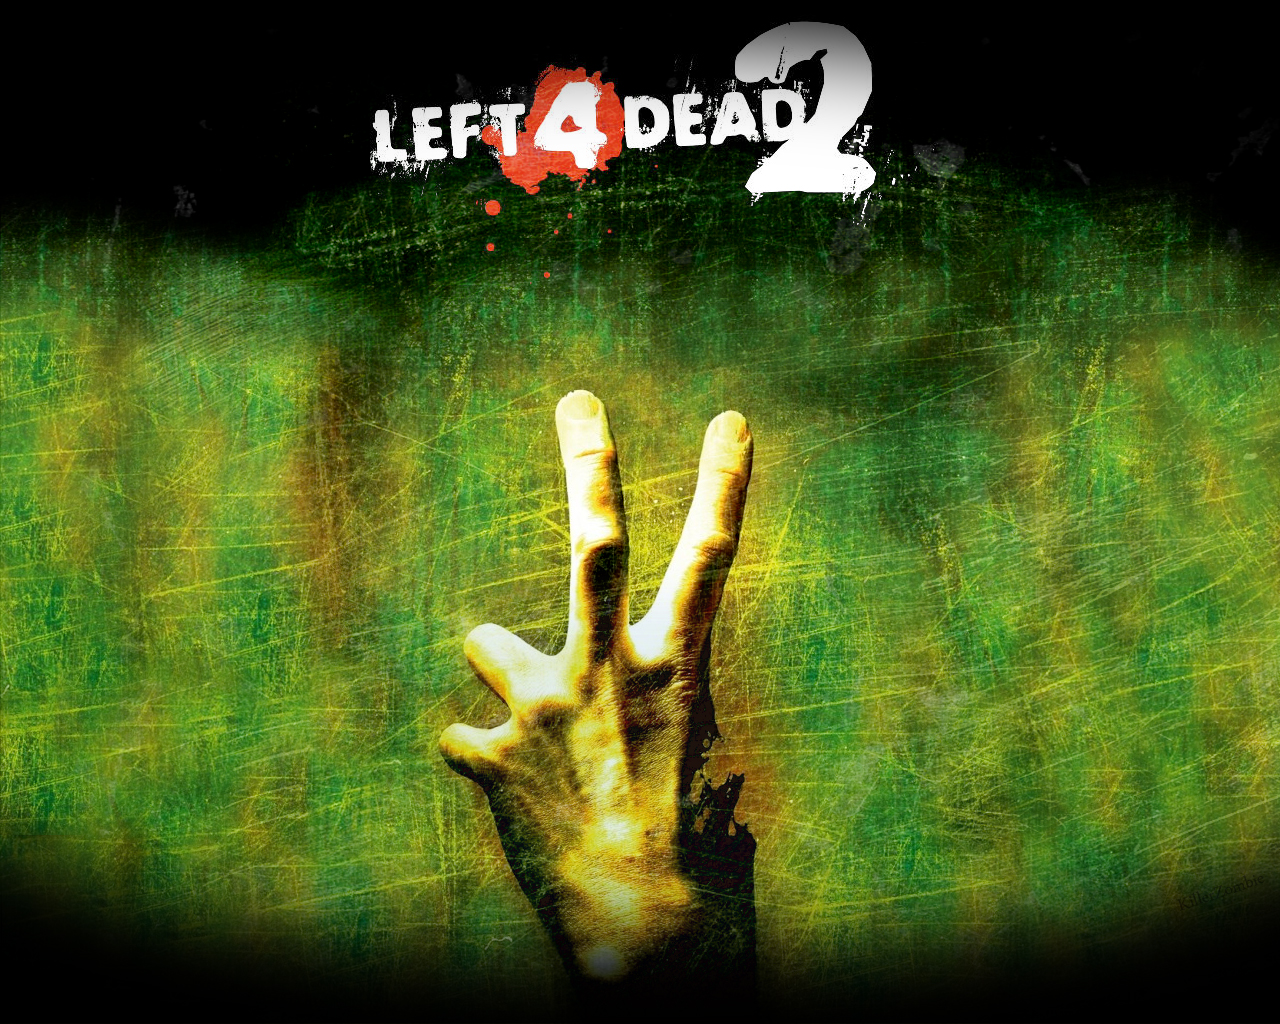 ... Left 4 Dead 2 Wallpaper 2 by KillerZombie123